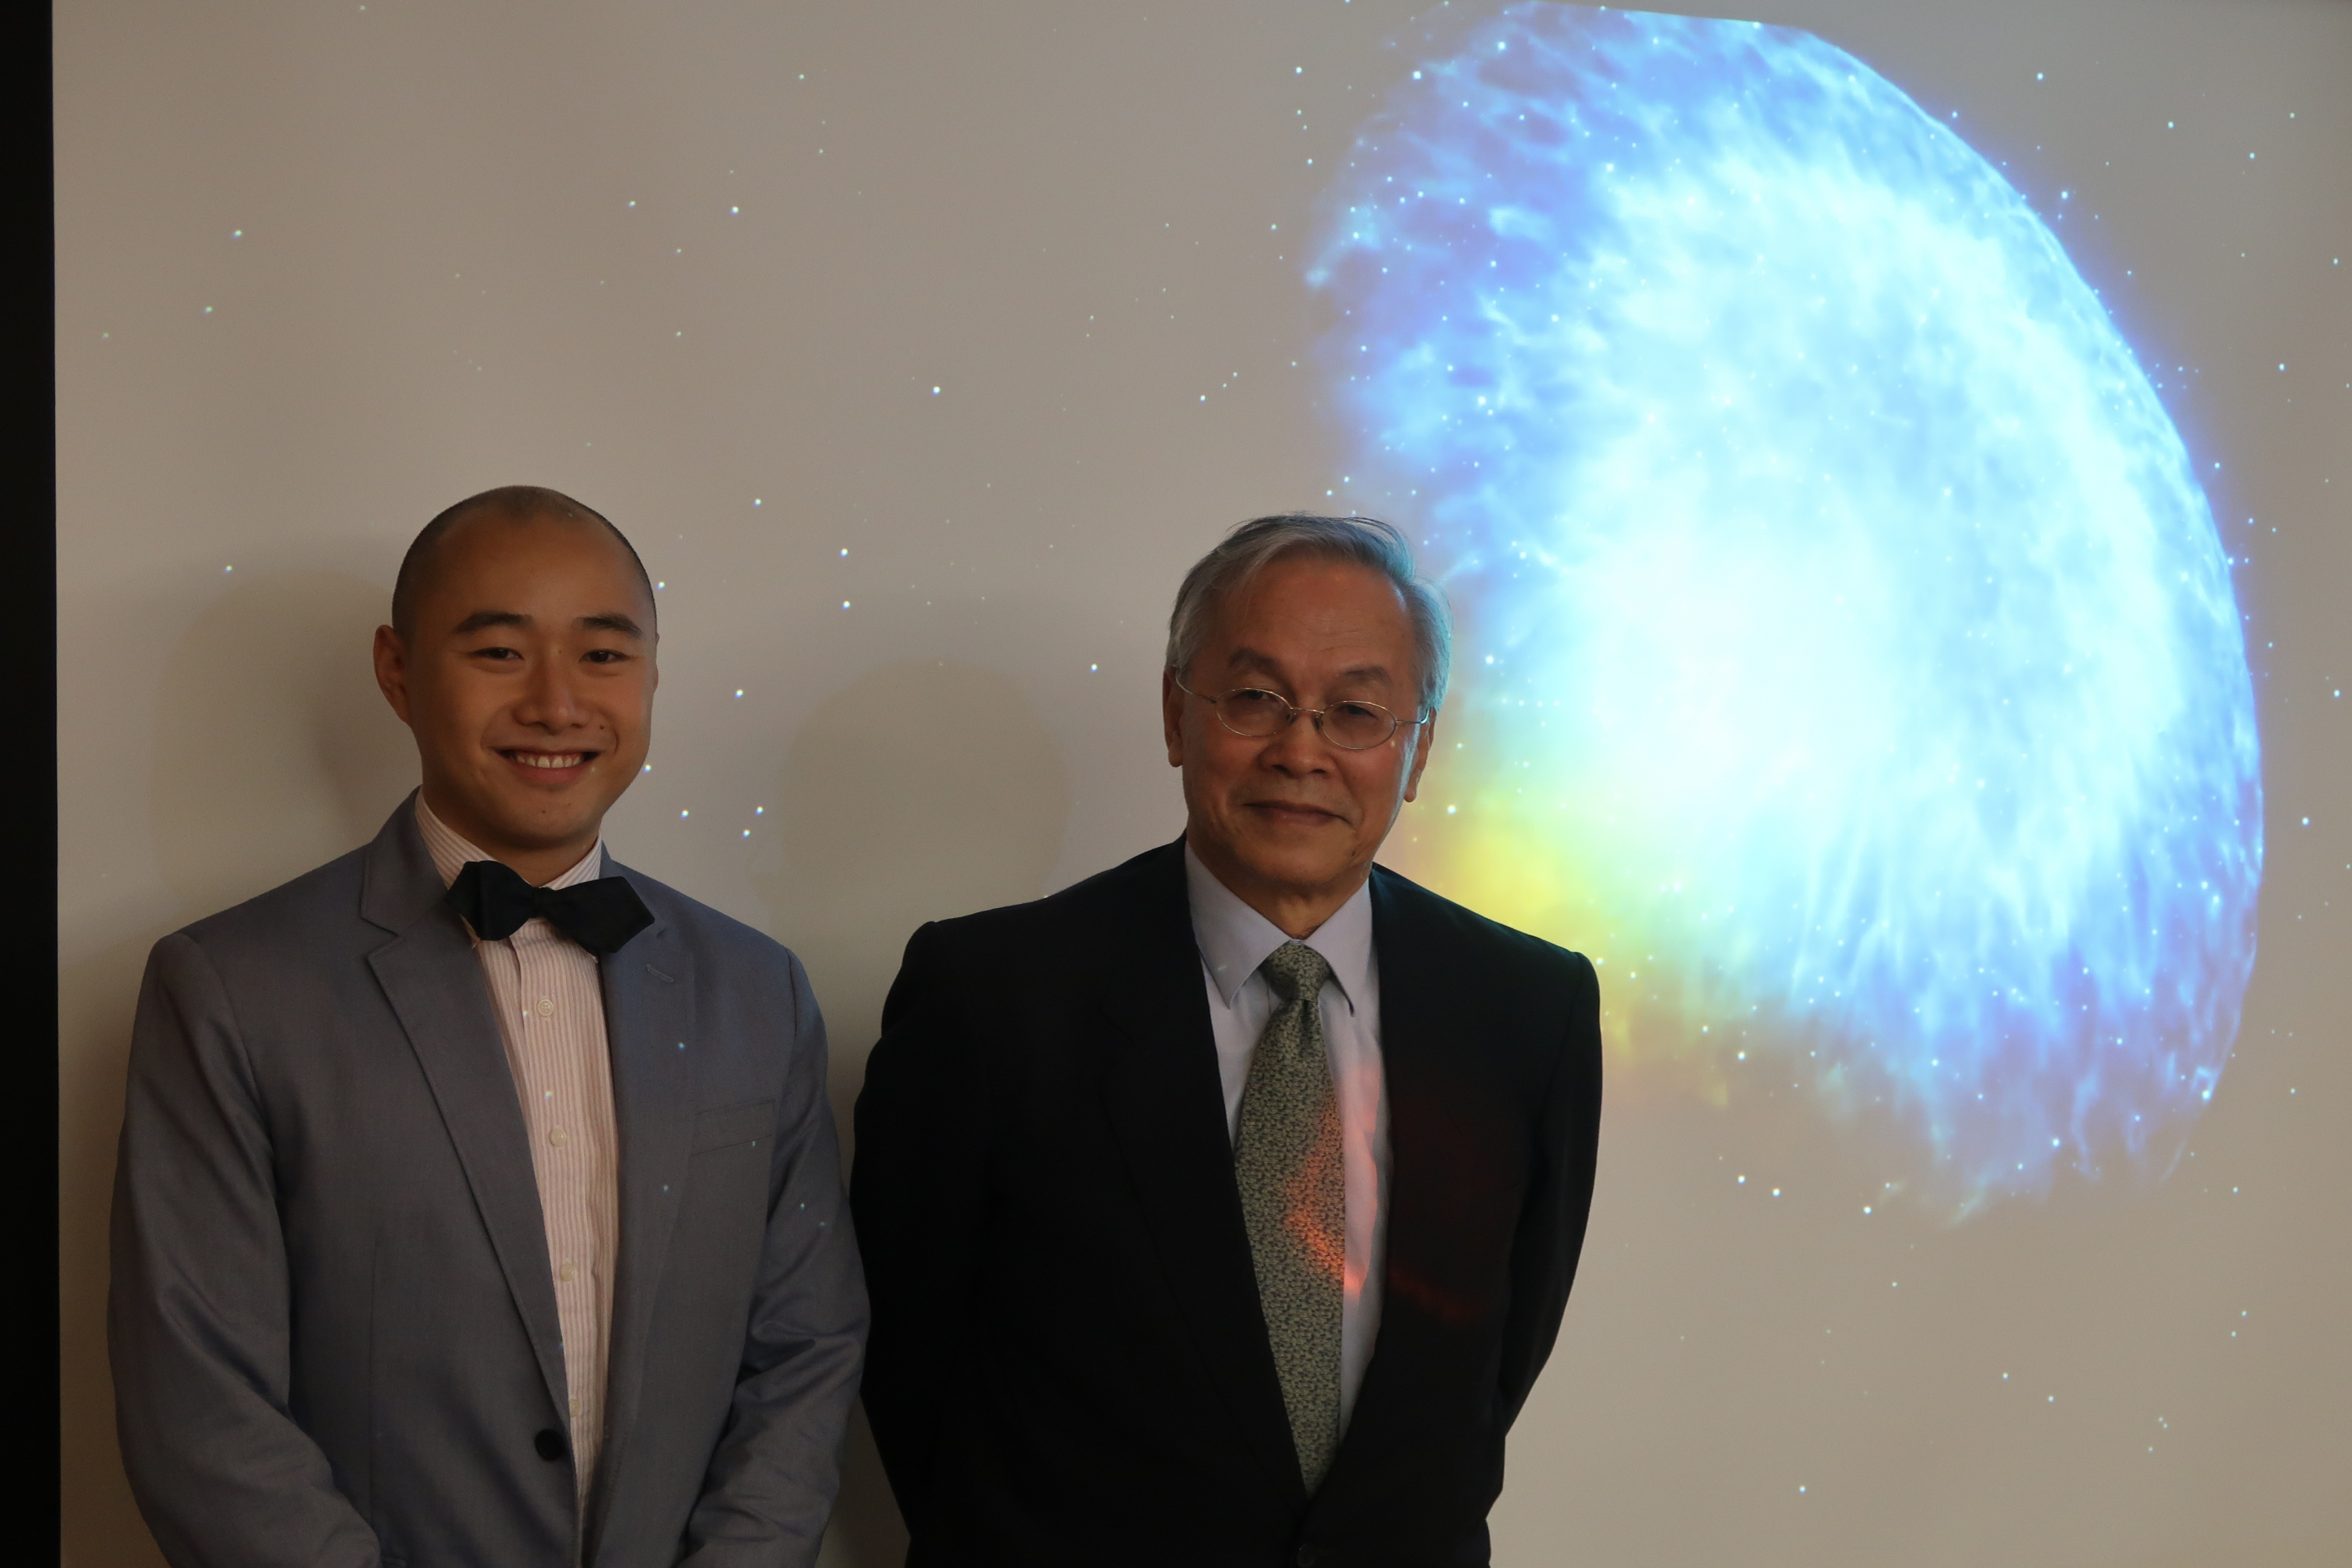 Prof.  Tjonnie G. F. LI, Assistant Professor, Department of Physics, CUHK (left) and Prof. Wing-Huan IP, Professor, K.T. Li Chair Professor, Institutes of Astronomy and Space Science, National Central University from Taiwan introduce the details of LIGO and Virgo make first detection of gravitational waves produced by colliding neutron stars.